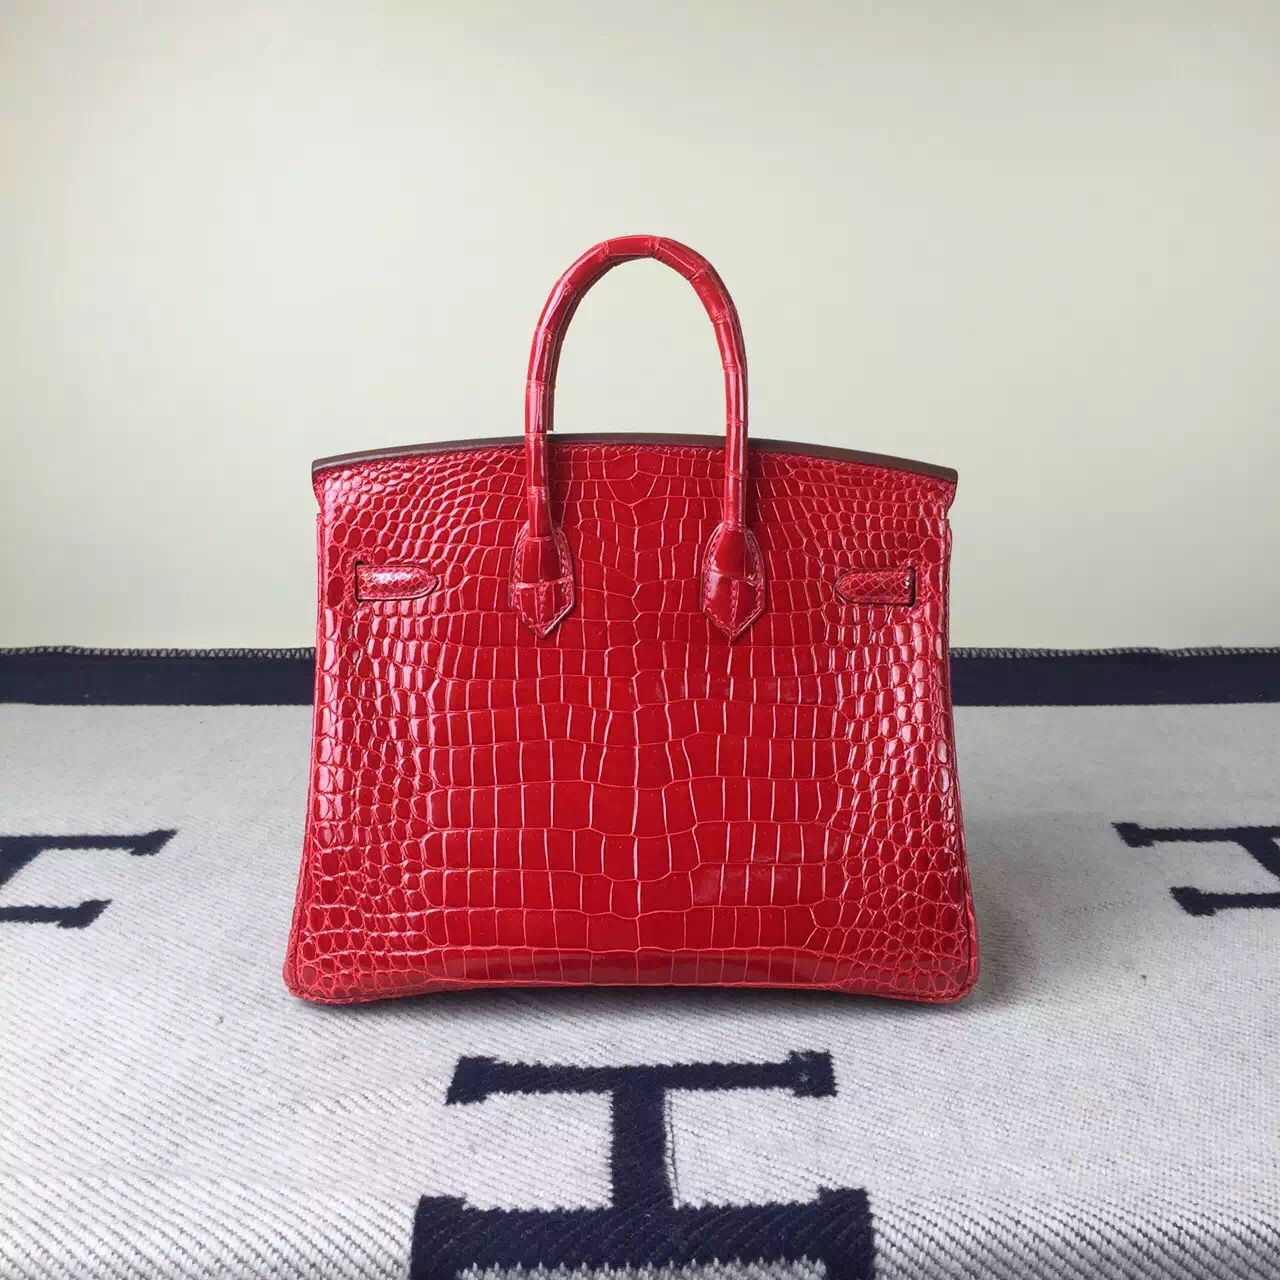 Hot Sale Hermes Crocodile Shiny Leather Birkin25cm in Braise Red